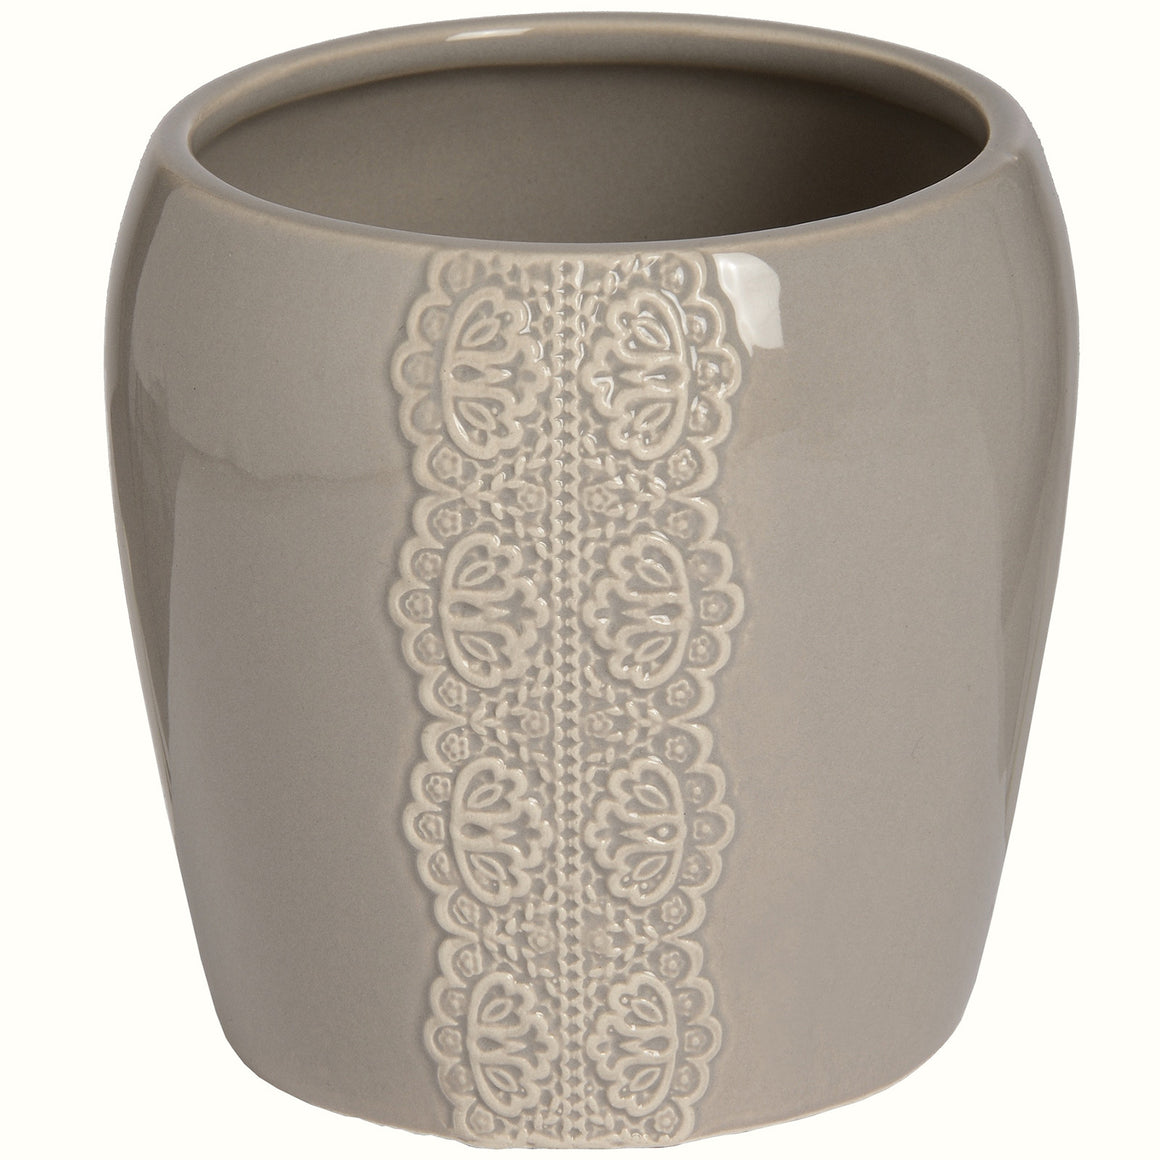 BEIGE CERAMIC LACE PLANTER